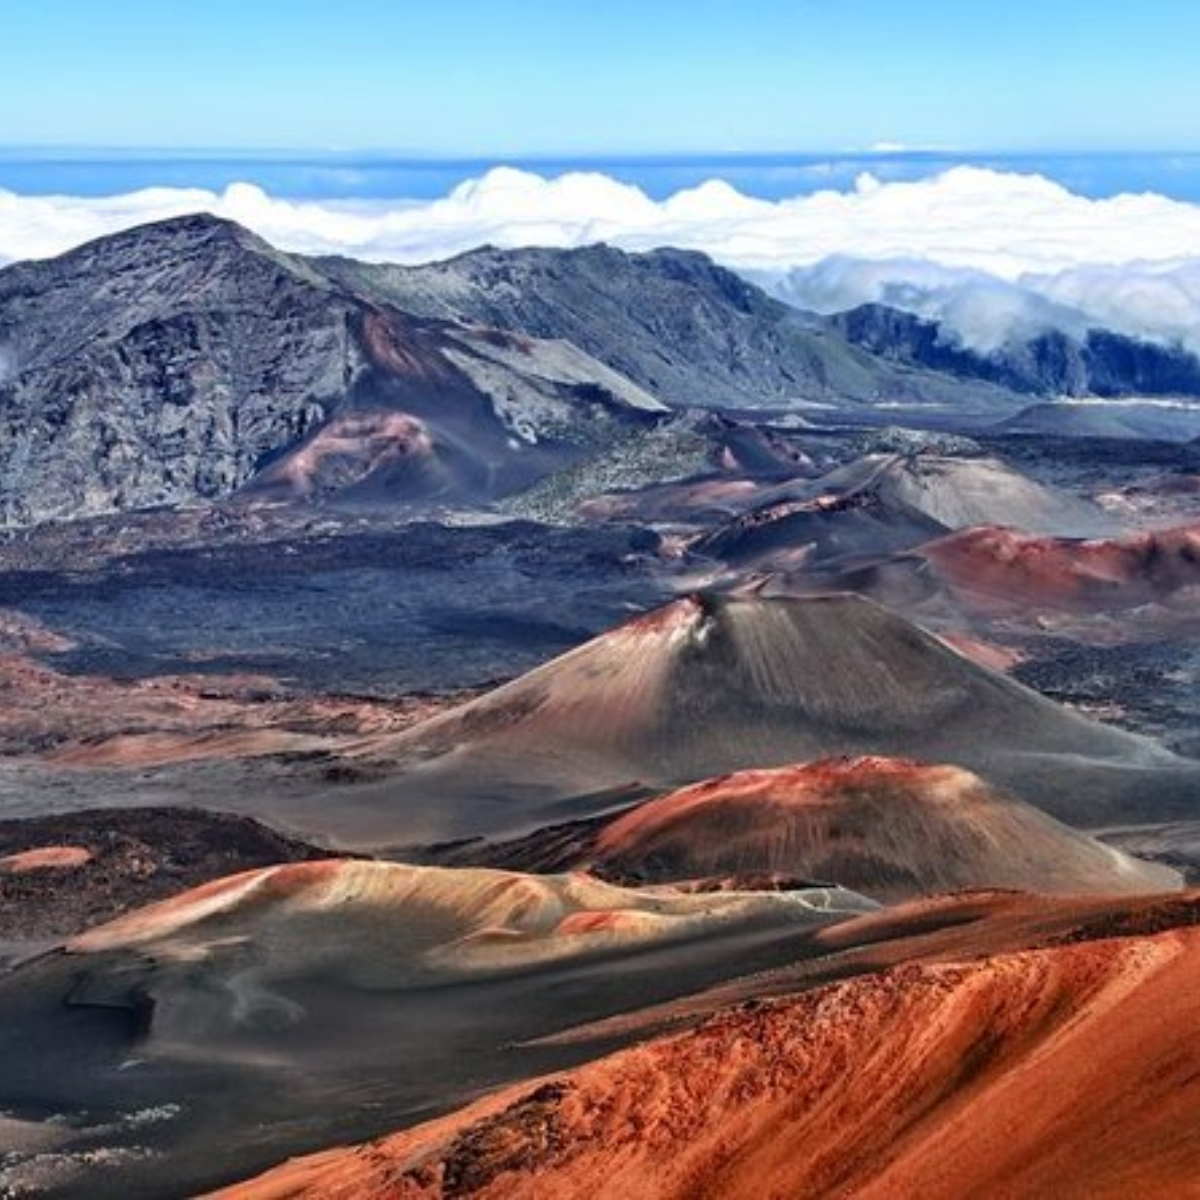 Haleakala, Iao Valley and Central Maui Day Tour Images